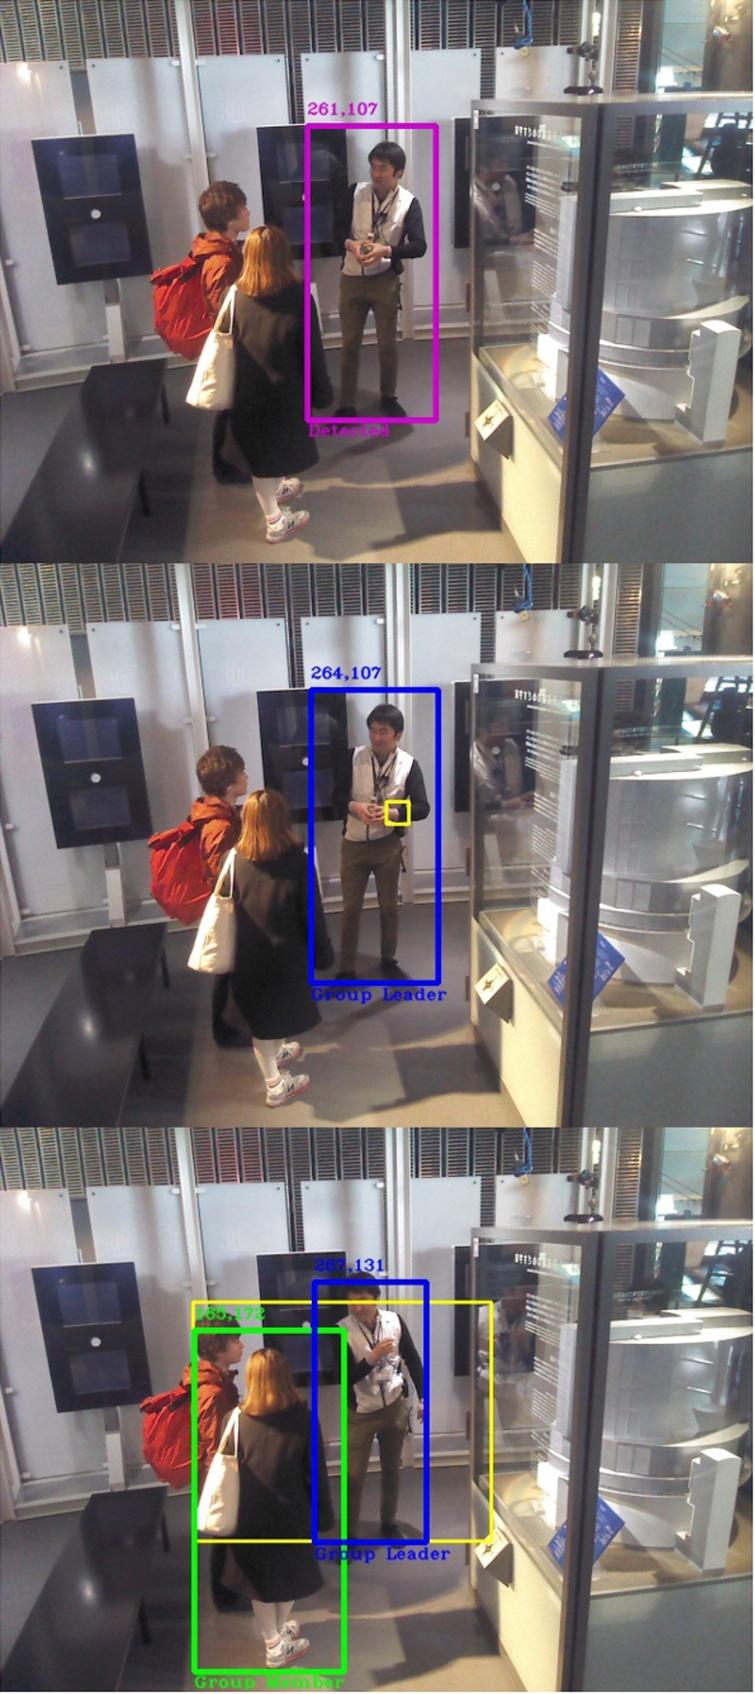 Training1 video exemplifying a Hard case. Top: Frame 1, the people detector outputs only one human detection. Middle: Frame 6, leader is categorized with no group members around despite the existence of more humans on the scene. Bottom: Frame 97, one of the group members is detected at last and is automatically categorized by the algorithm.